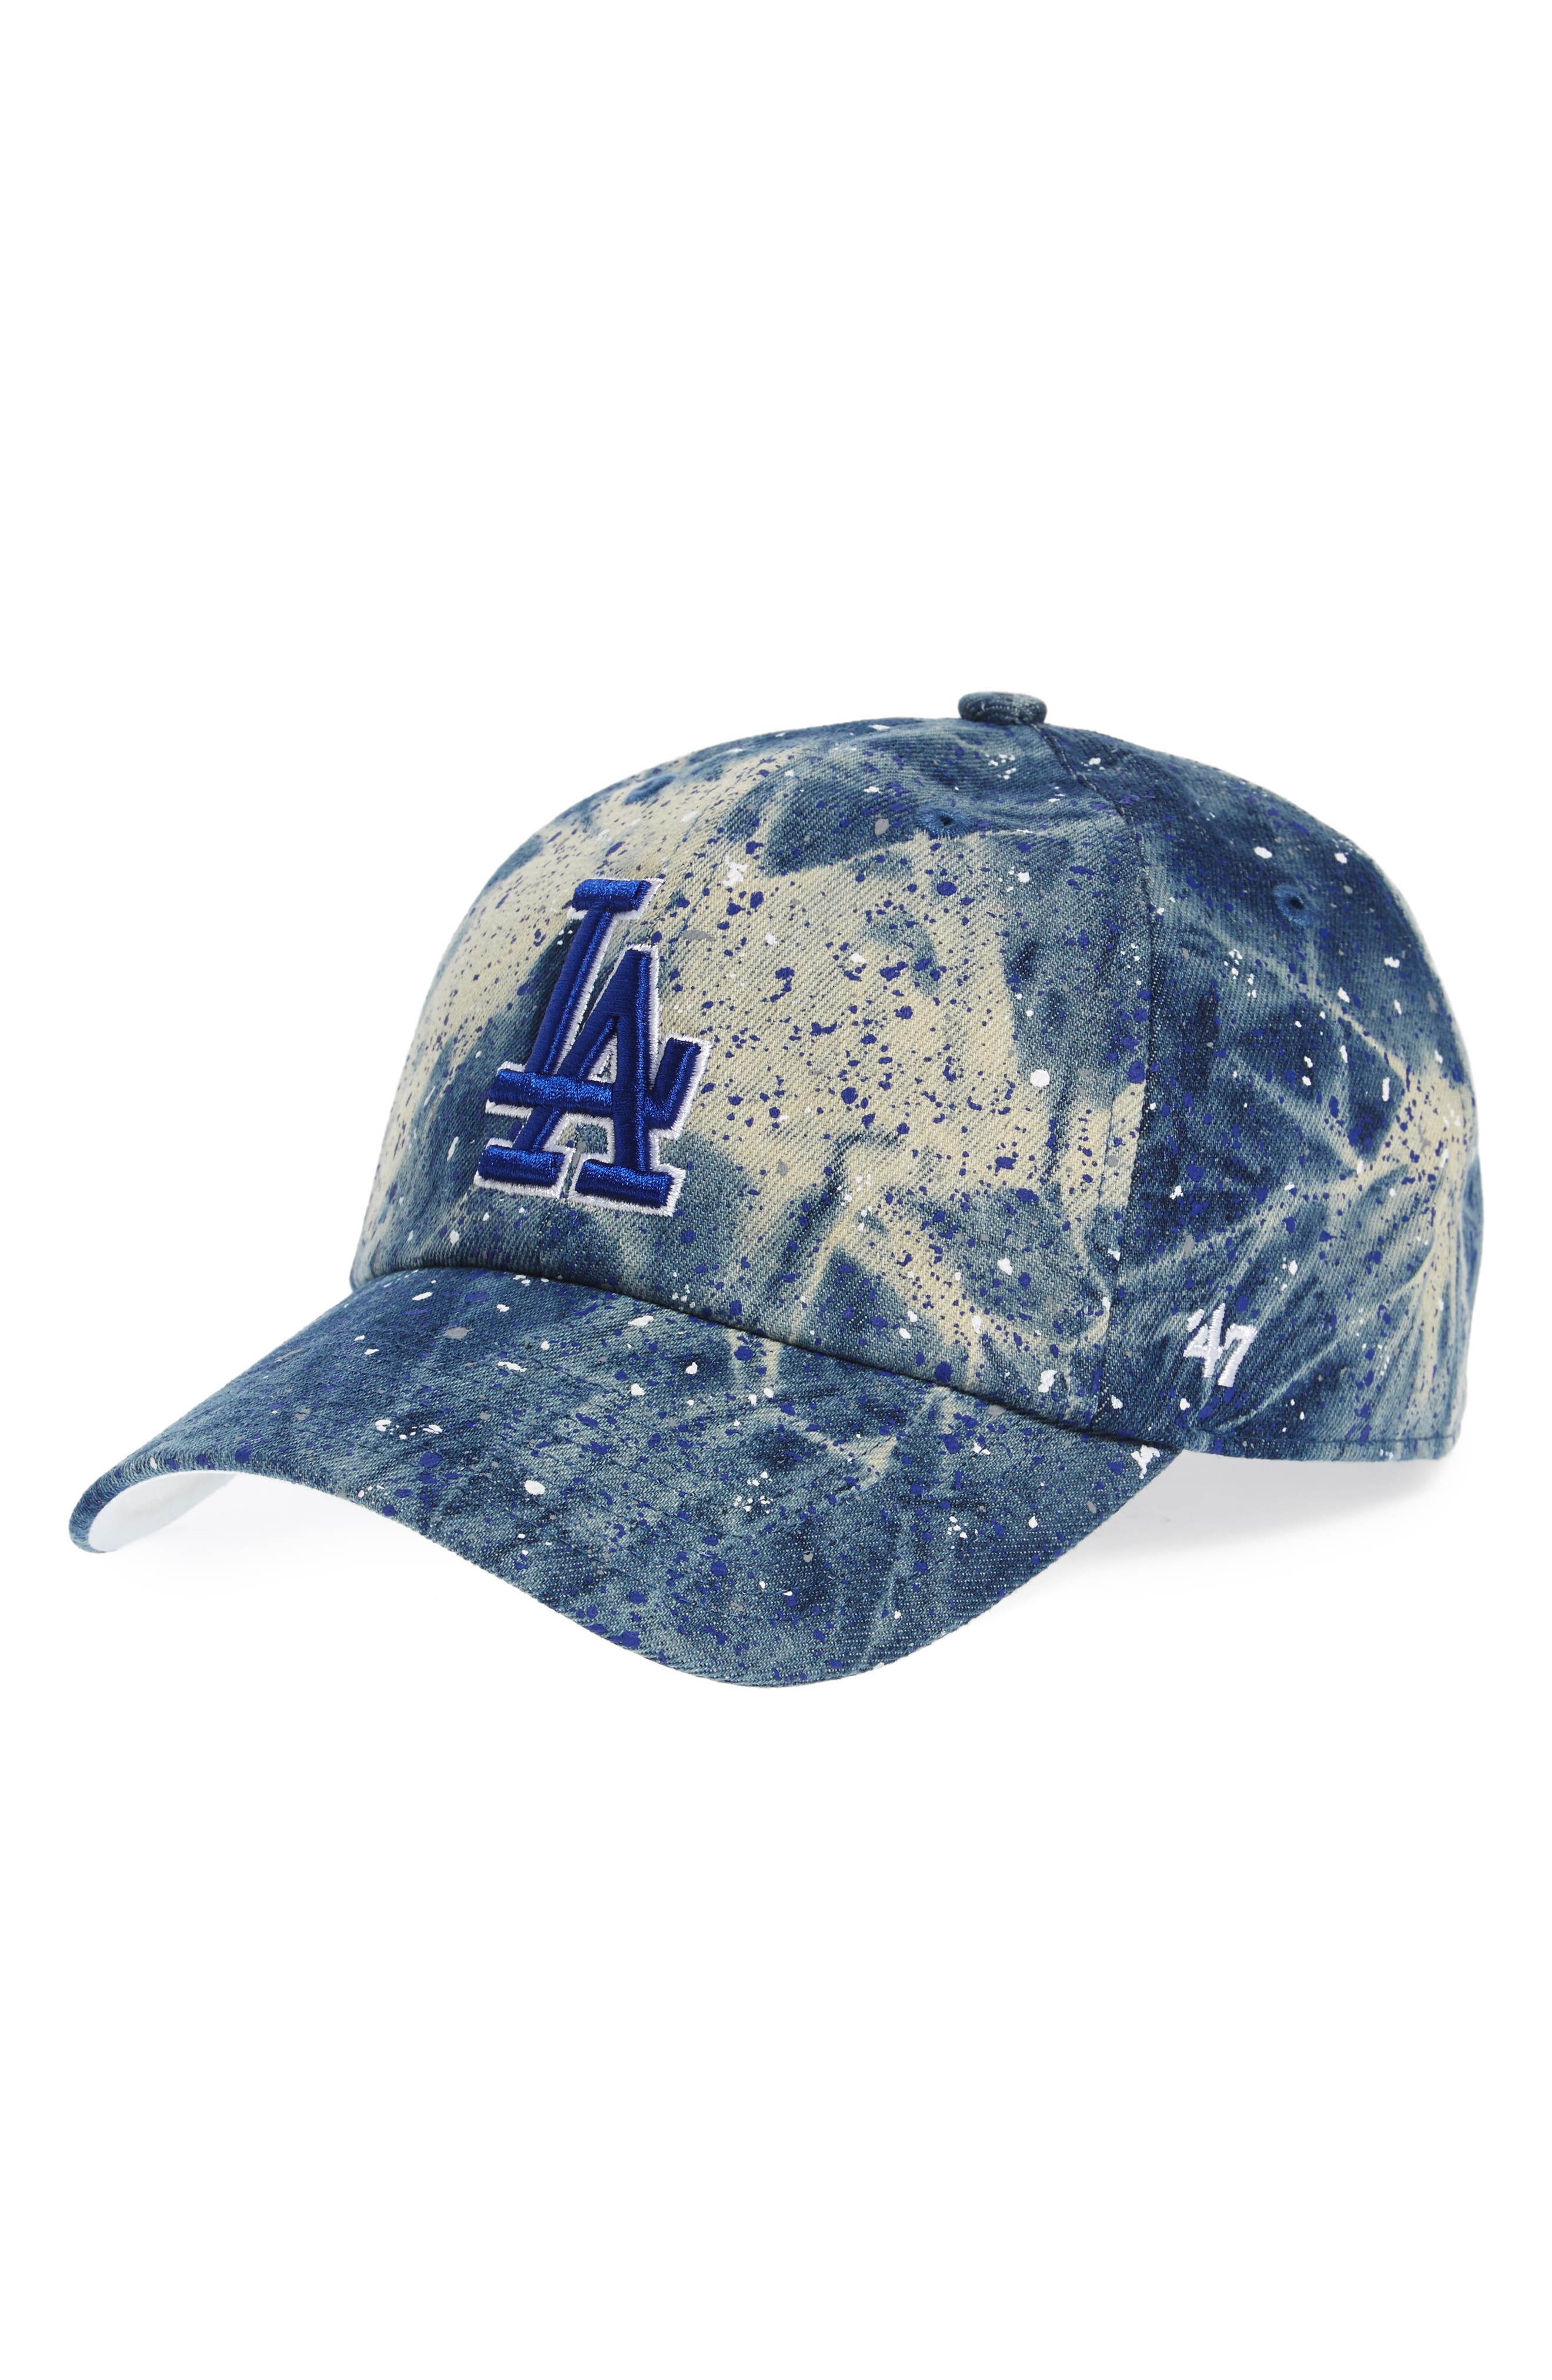 Los Angeles Dodgers - Blue Splatter Baseball Cap,                         Main,                         color, 400